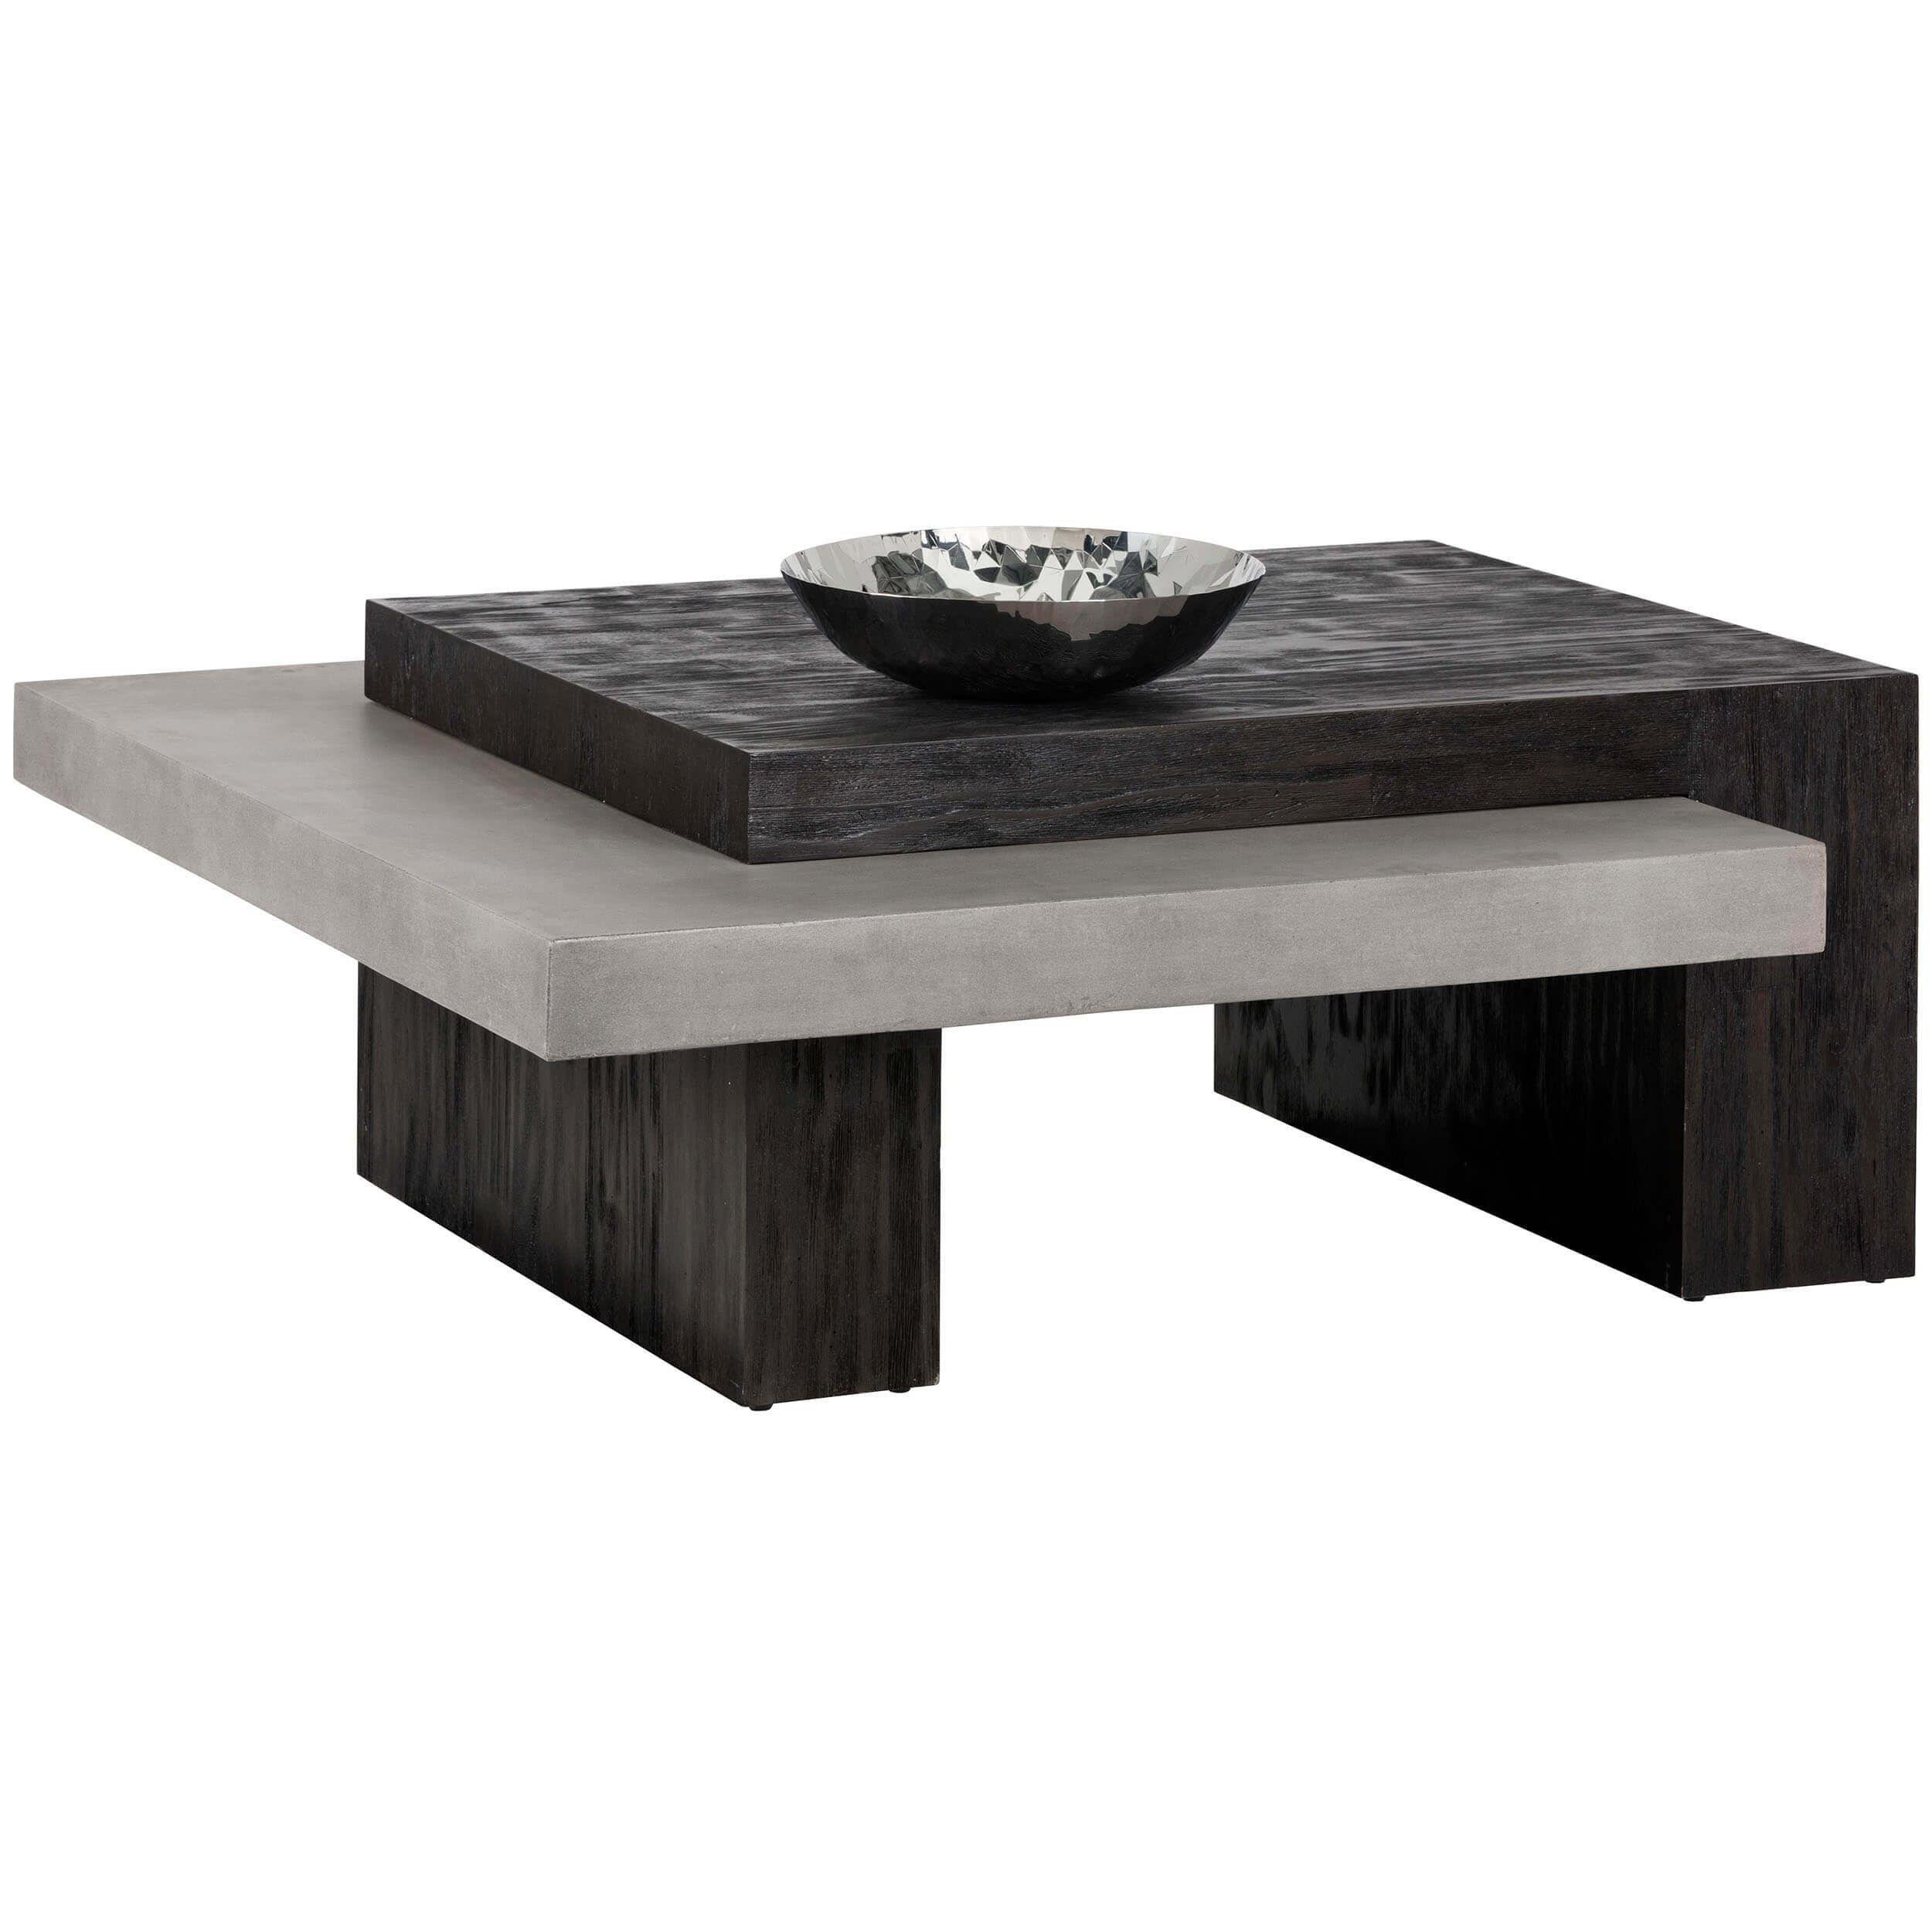 Zoron Square Coffee Table Default Title Coffee Table Coffee Table Square Modern Coffee Tables [ 2500 x 2500 Pixel ]